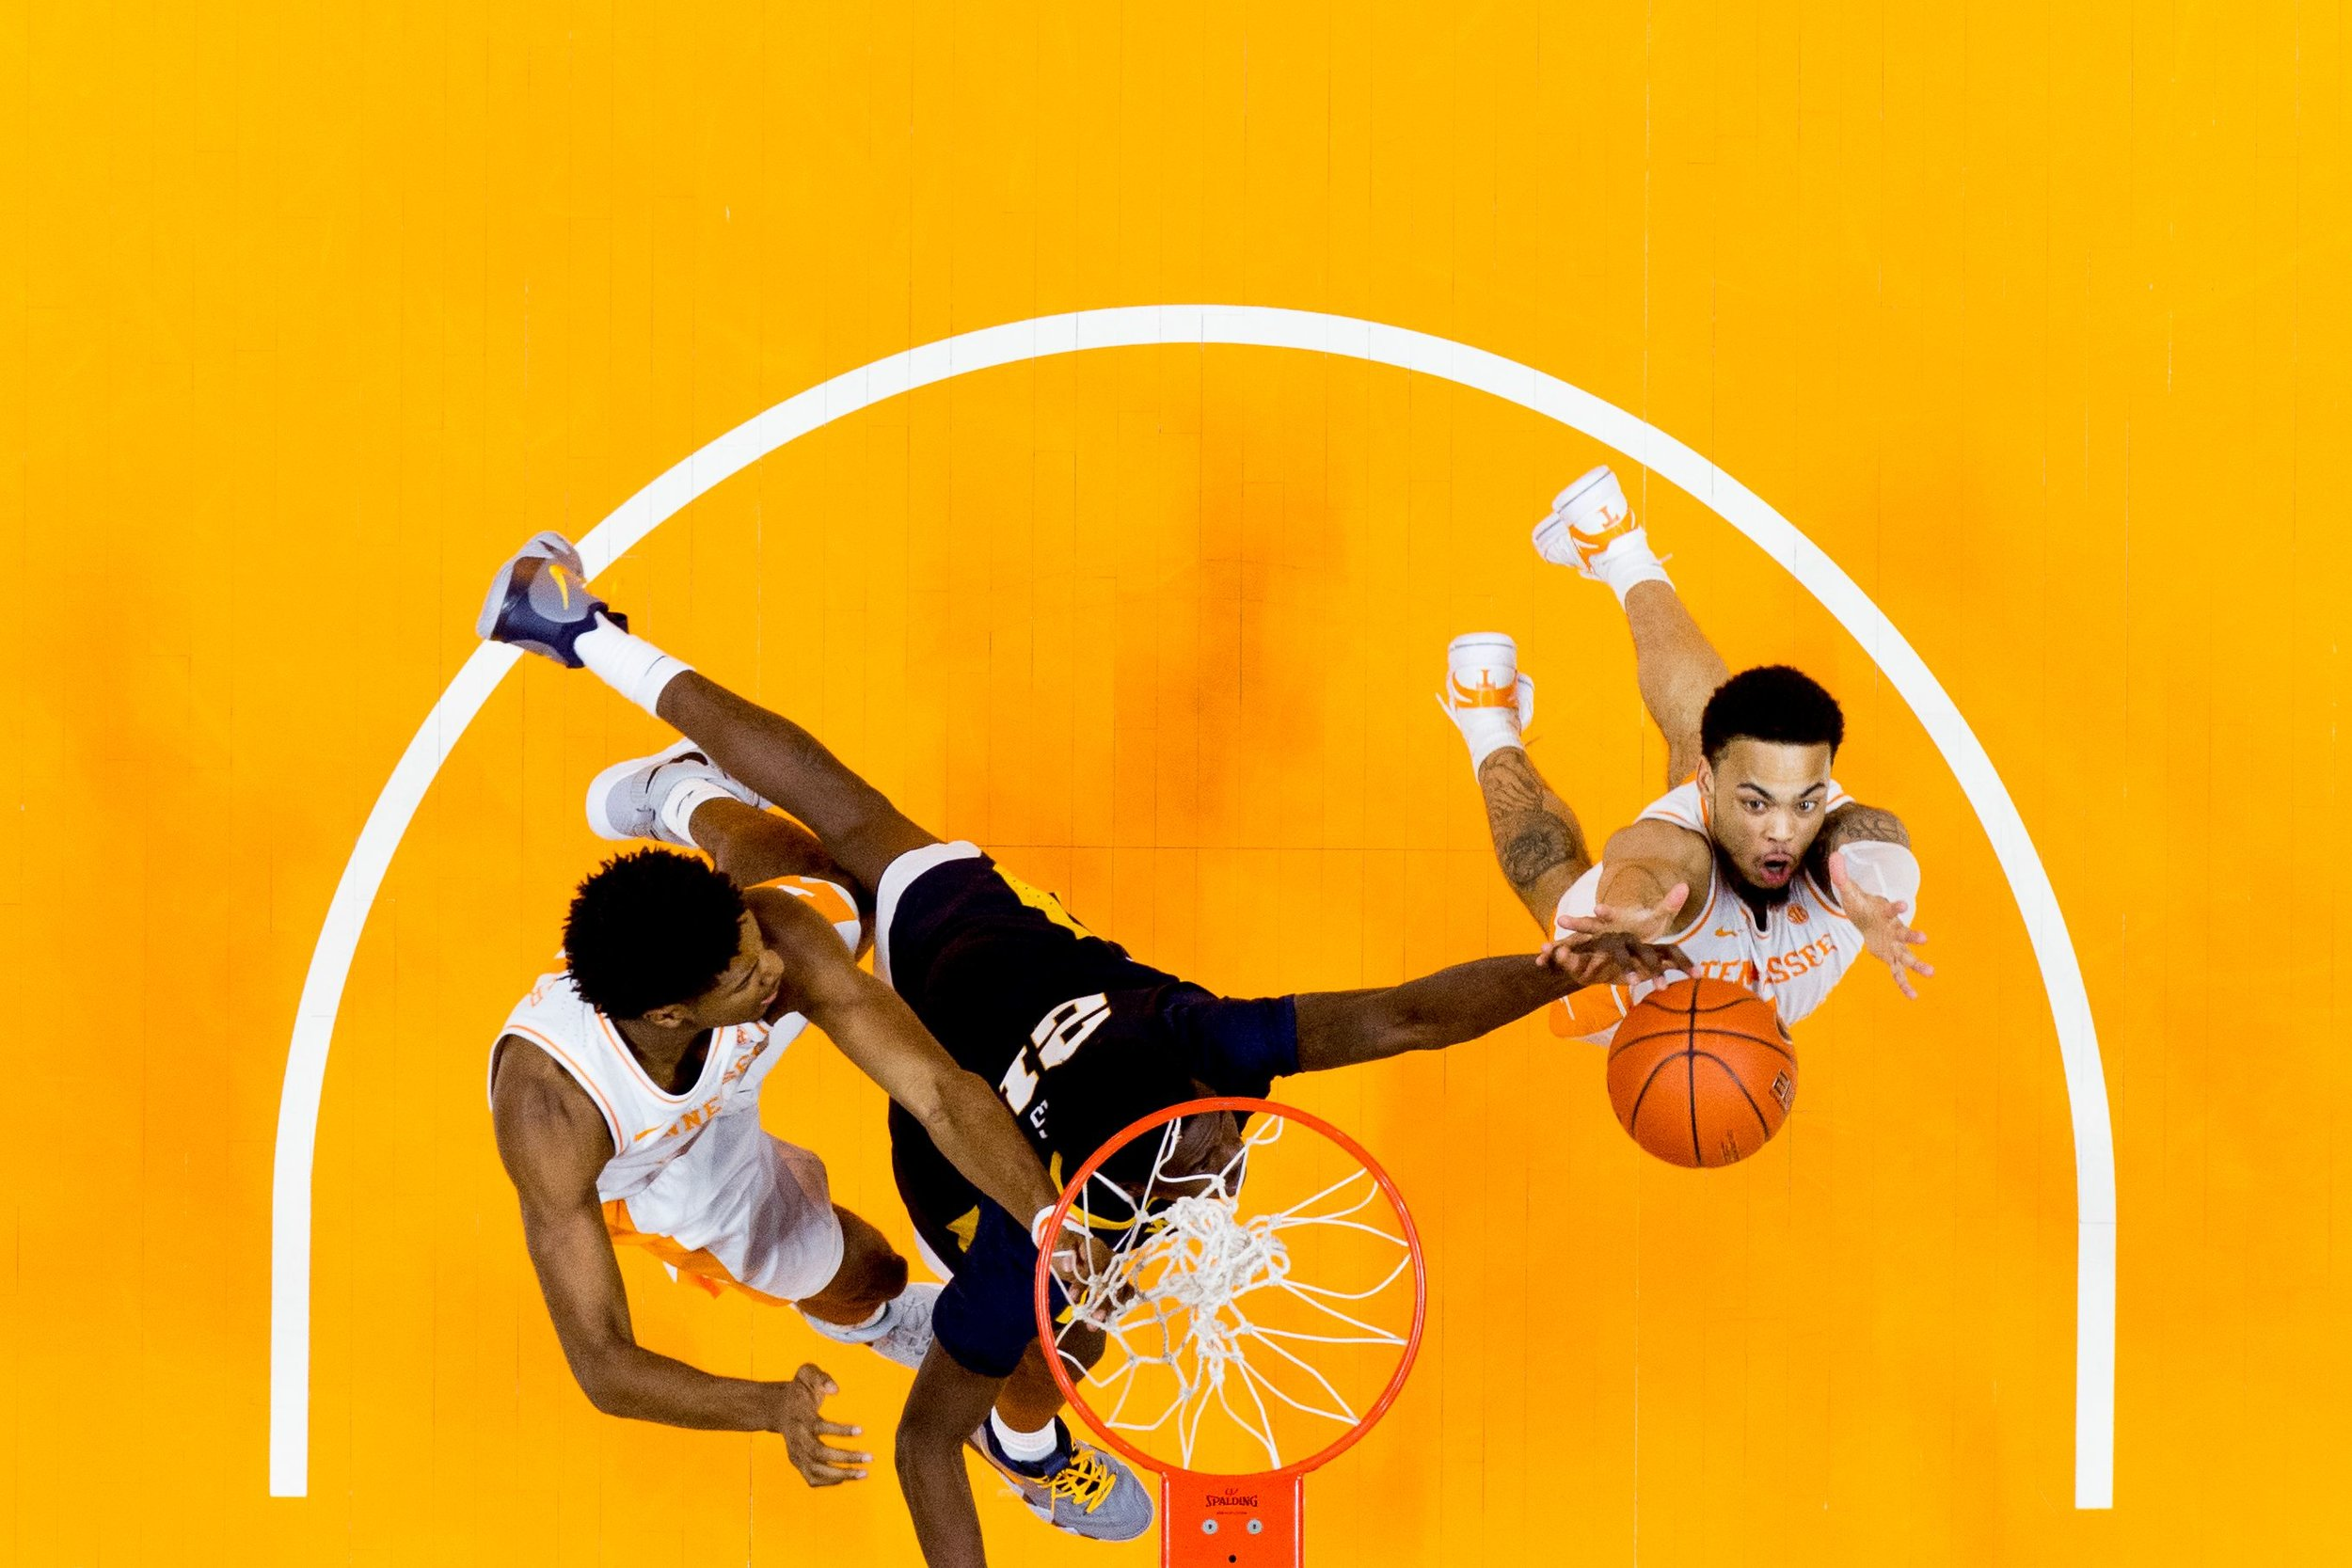 Tennessee guard Jordan Bone (0) grabs the rebound from West Virginia forward Wesley Harris (21) during a SEC/Big 12 Challenge game between Tennessee and West Virginia at Thompson-Boling Arena in Knoxville.